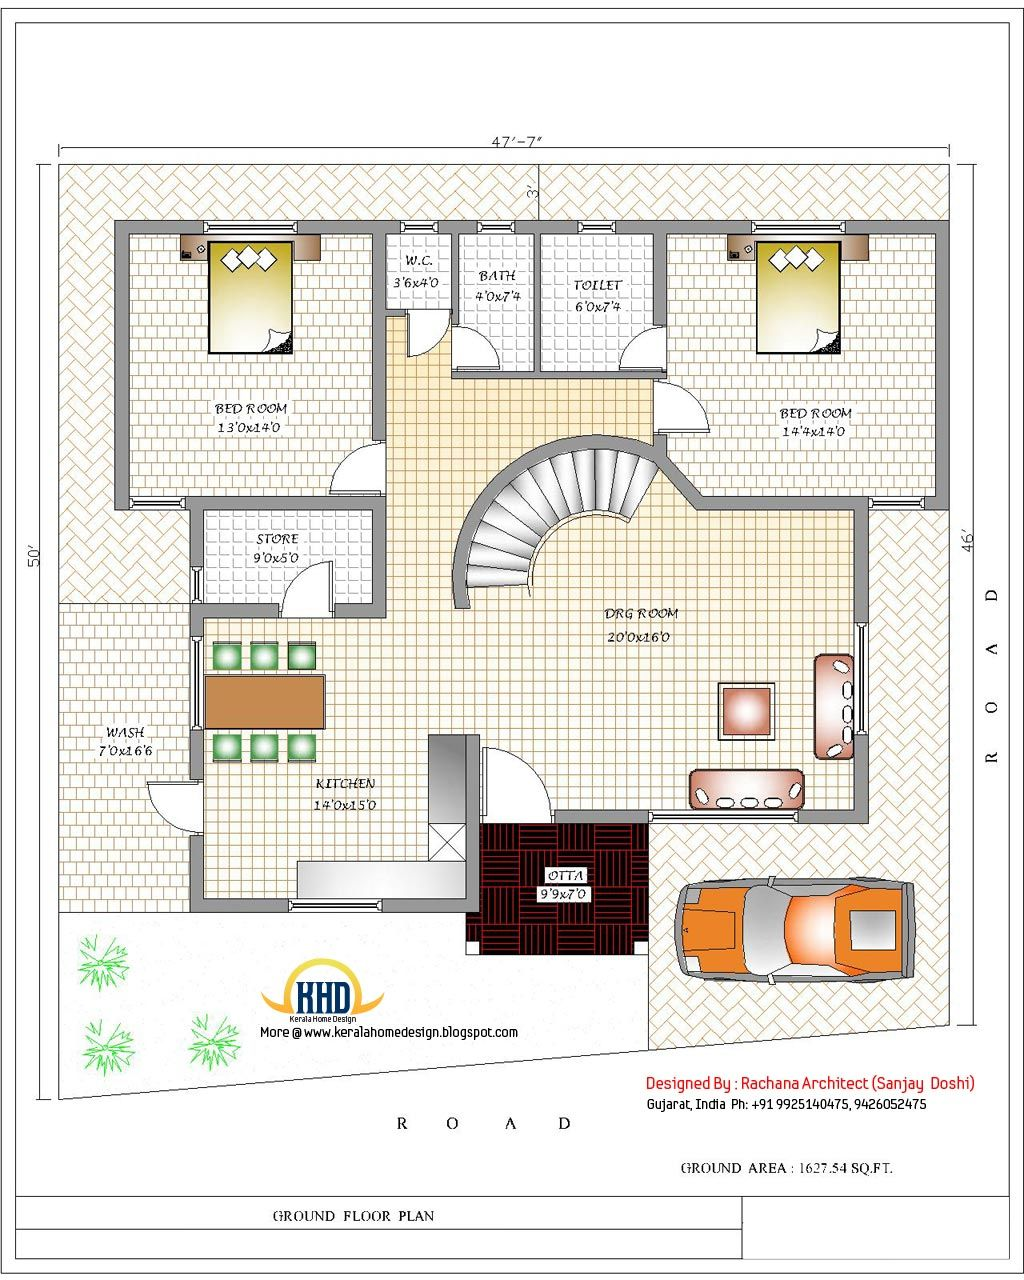 tiny houses design plans india house plan ground floor plan 3200 sqft tiny house floor plans pinterest 1 bedroom house plans house plans and